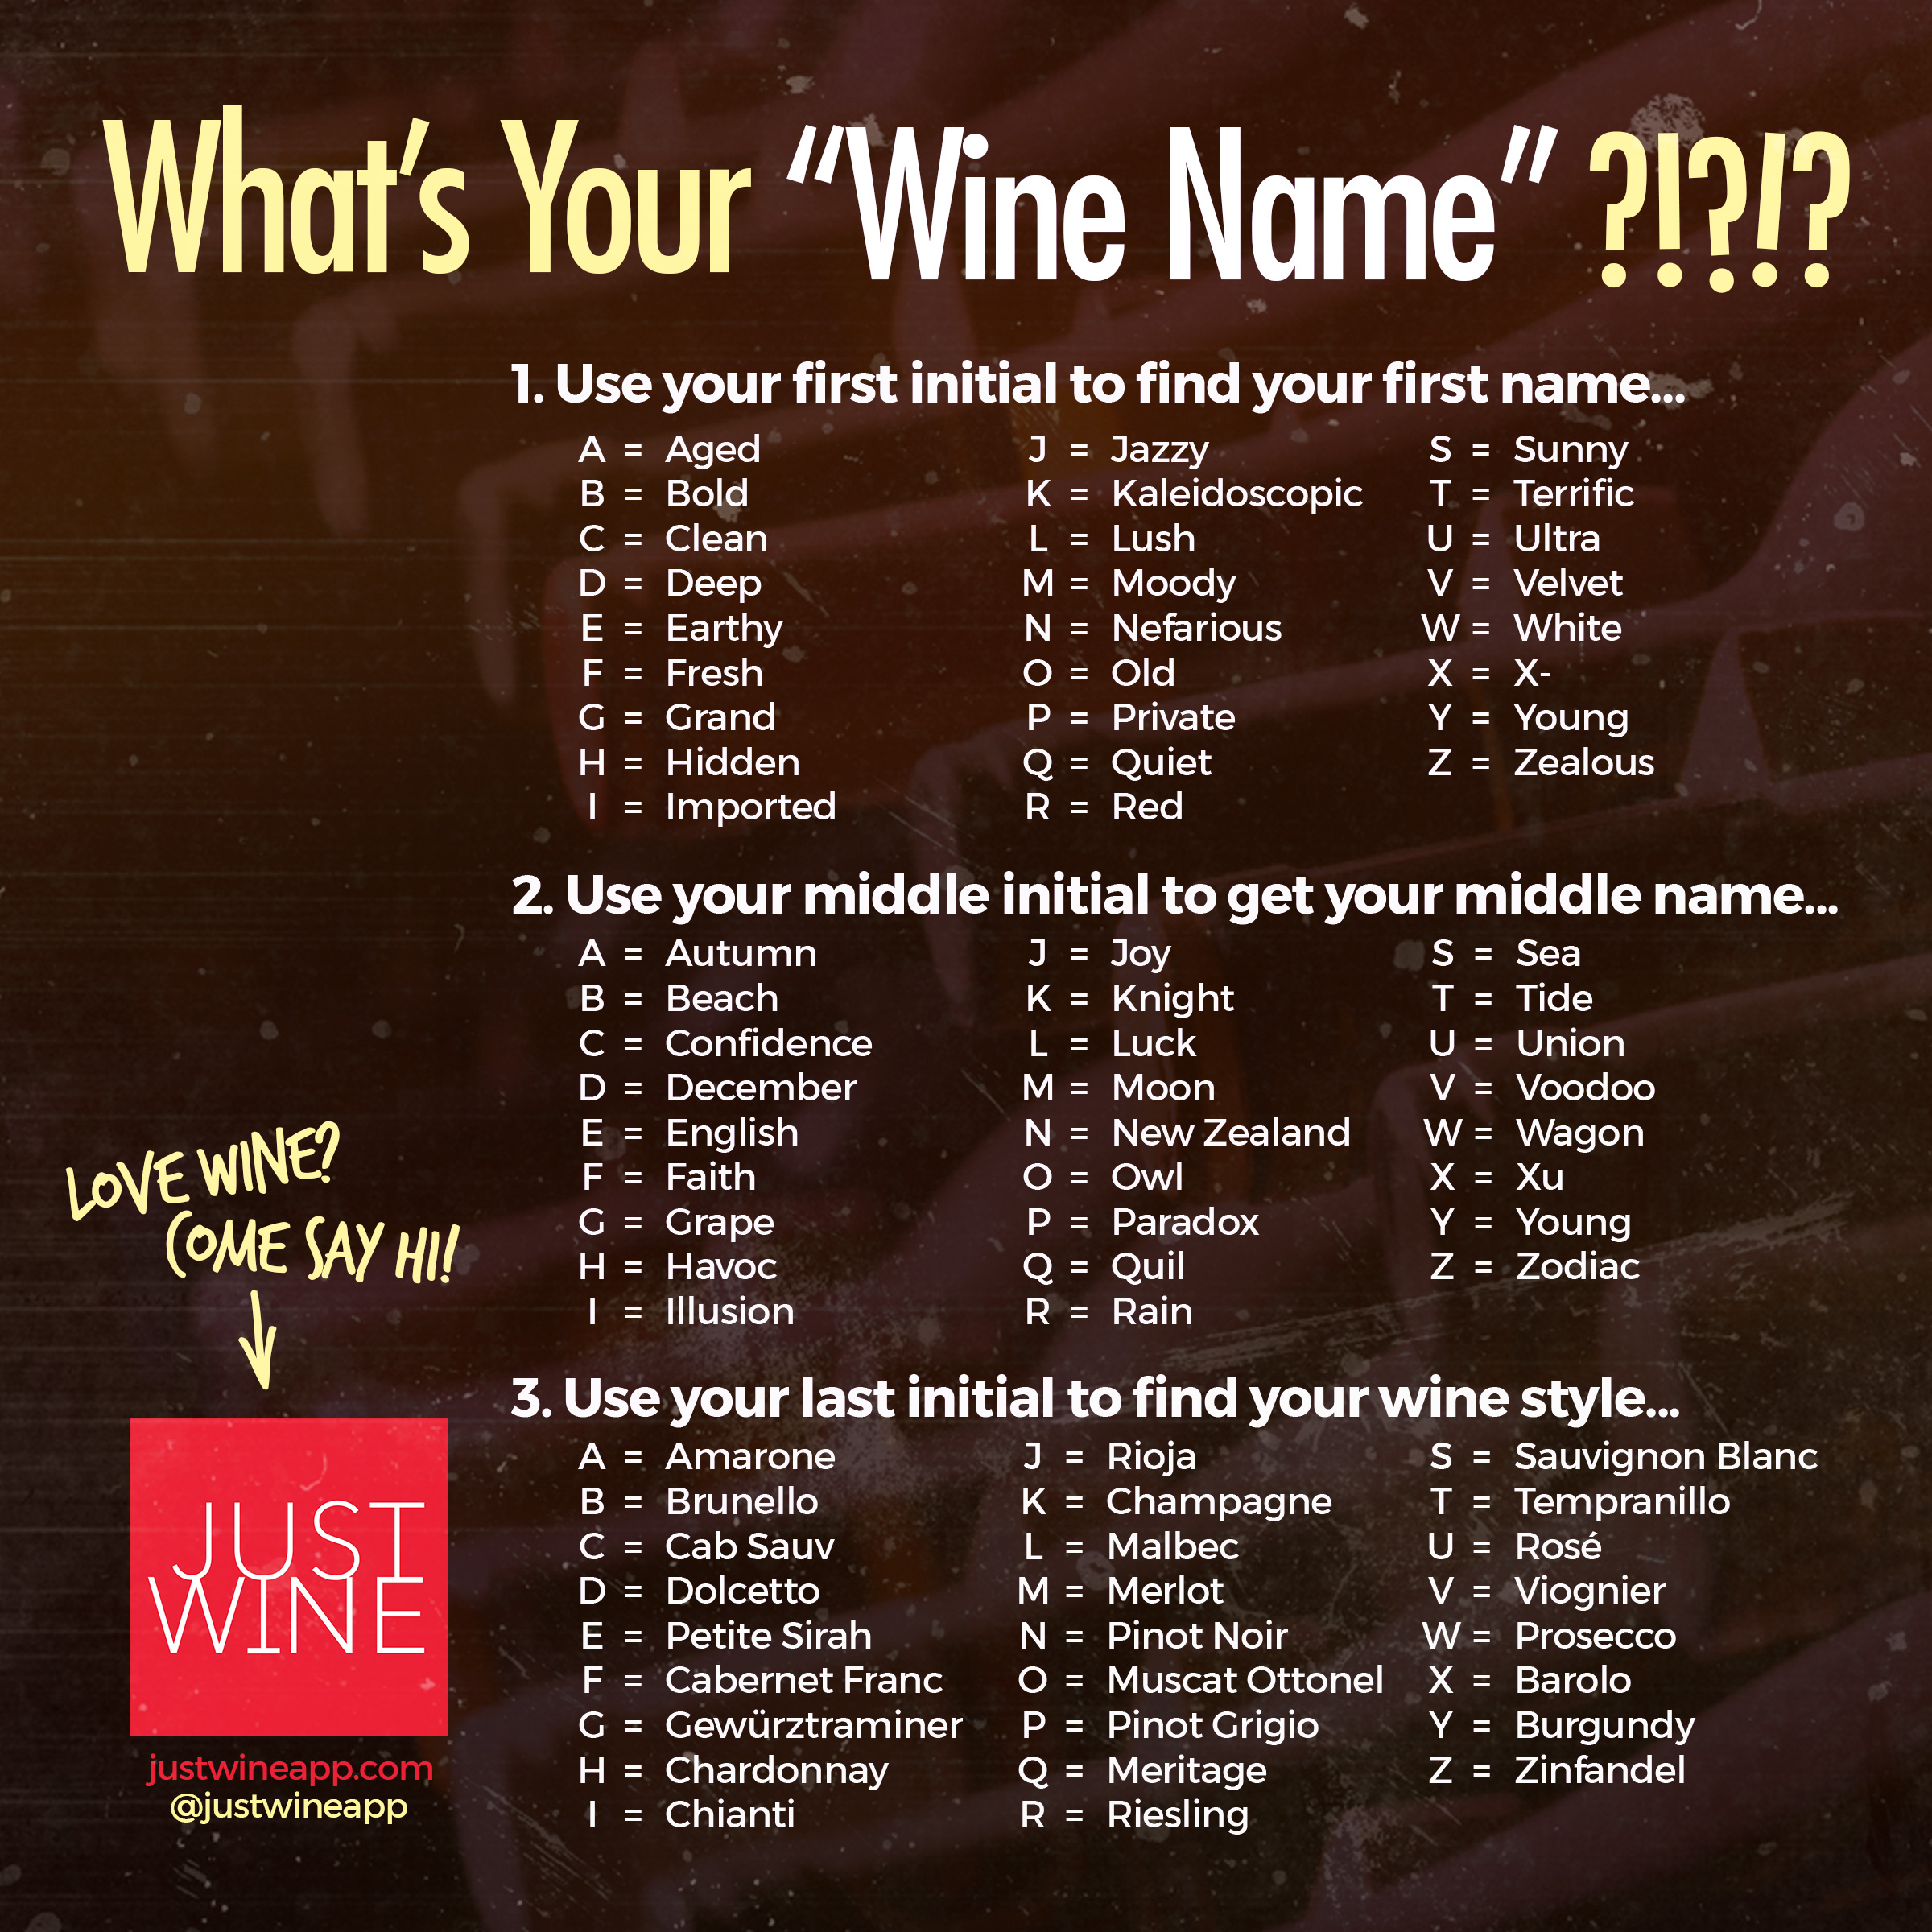 What's Your Wine Name?  Just Wine